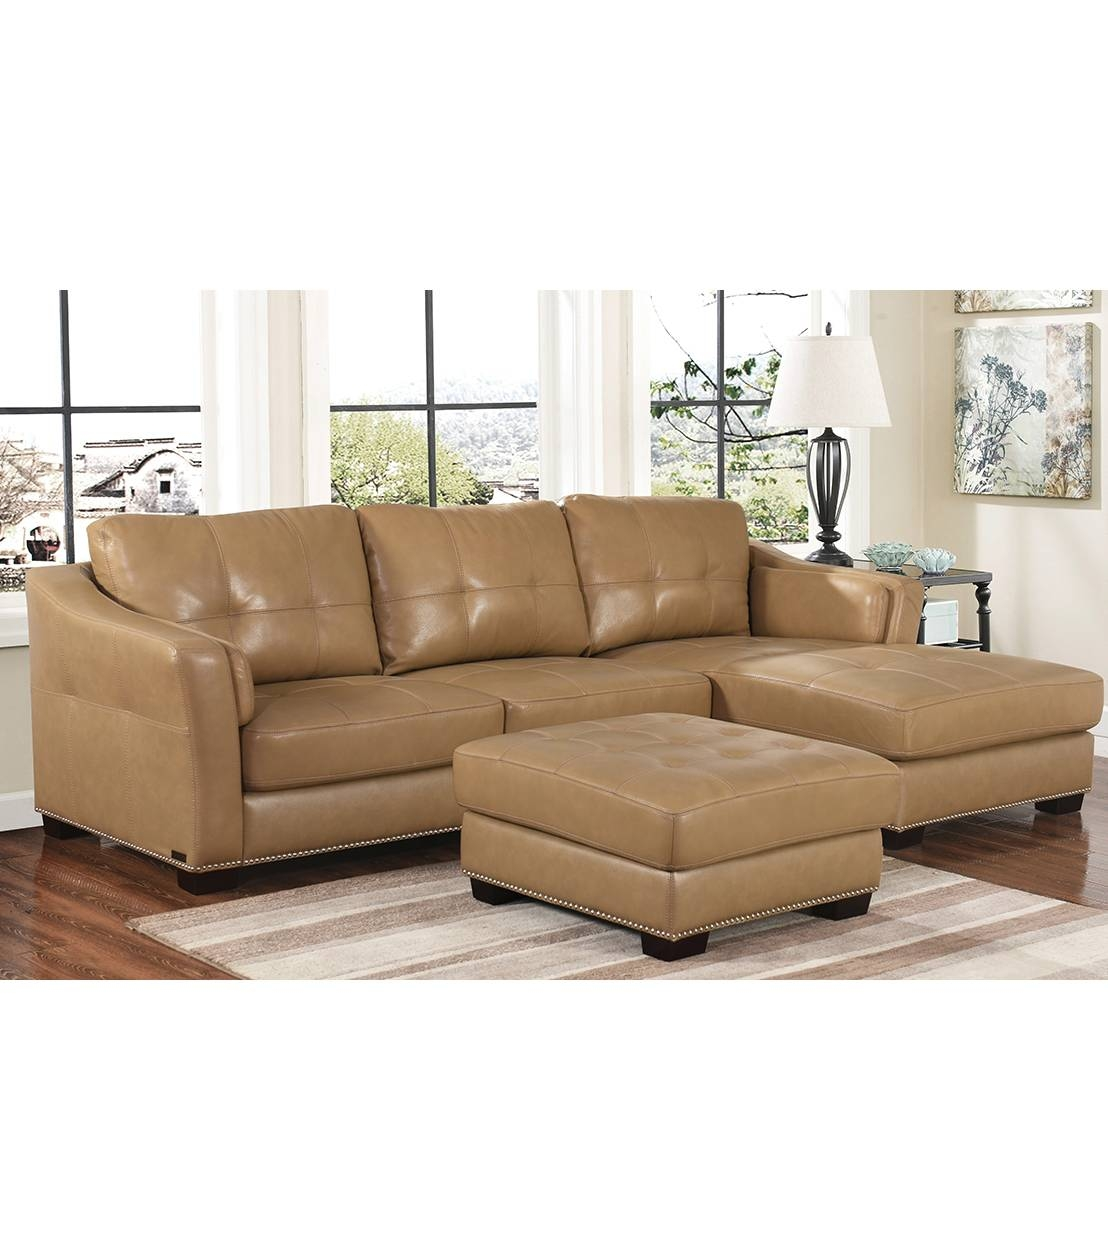 Sectionals : Chelsie Leather Sectional For Abbyson Sectional Sofas (View 6 of 15)